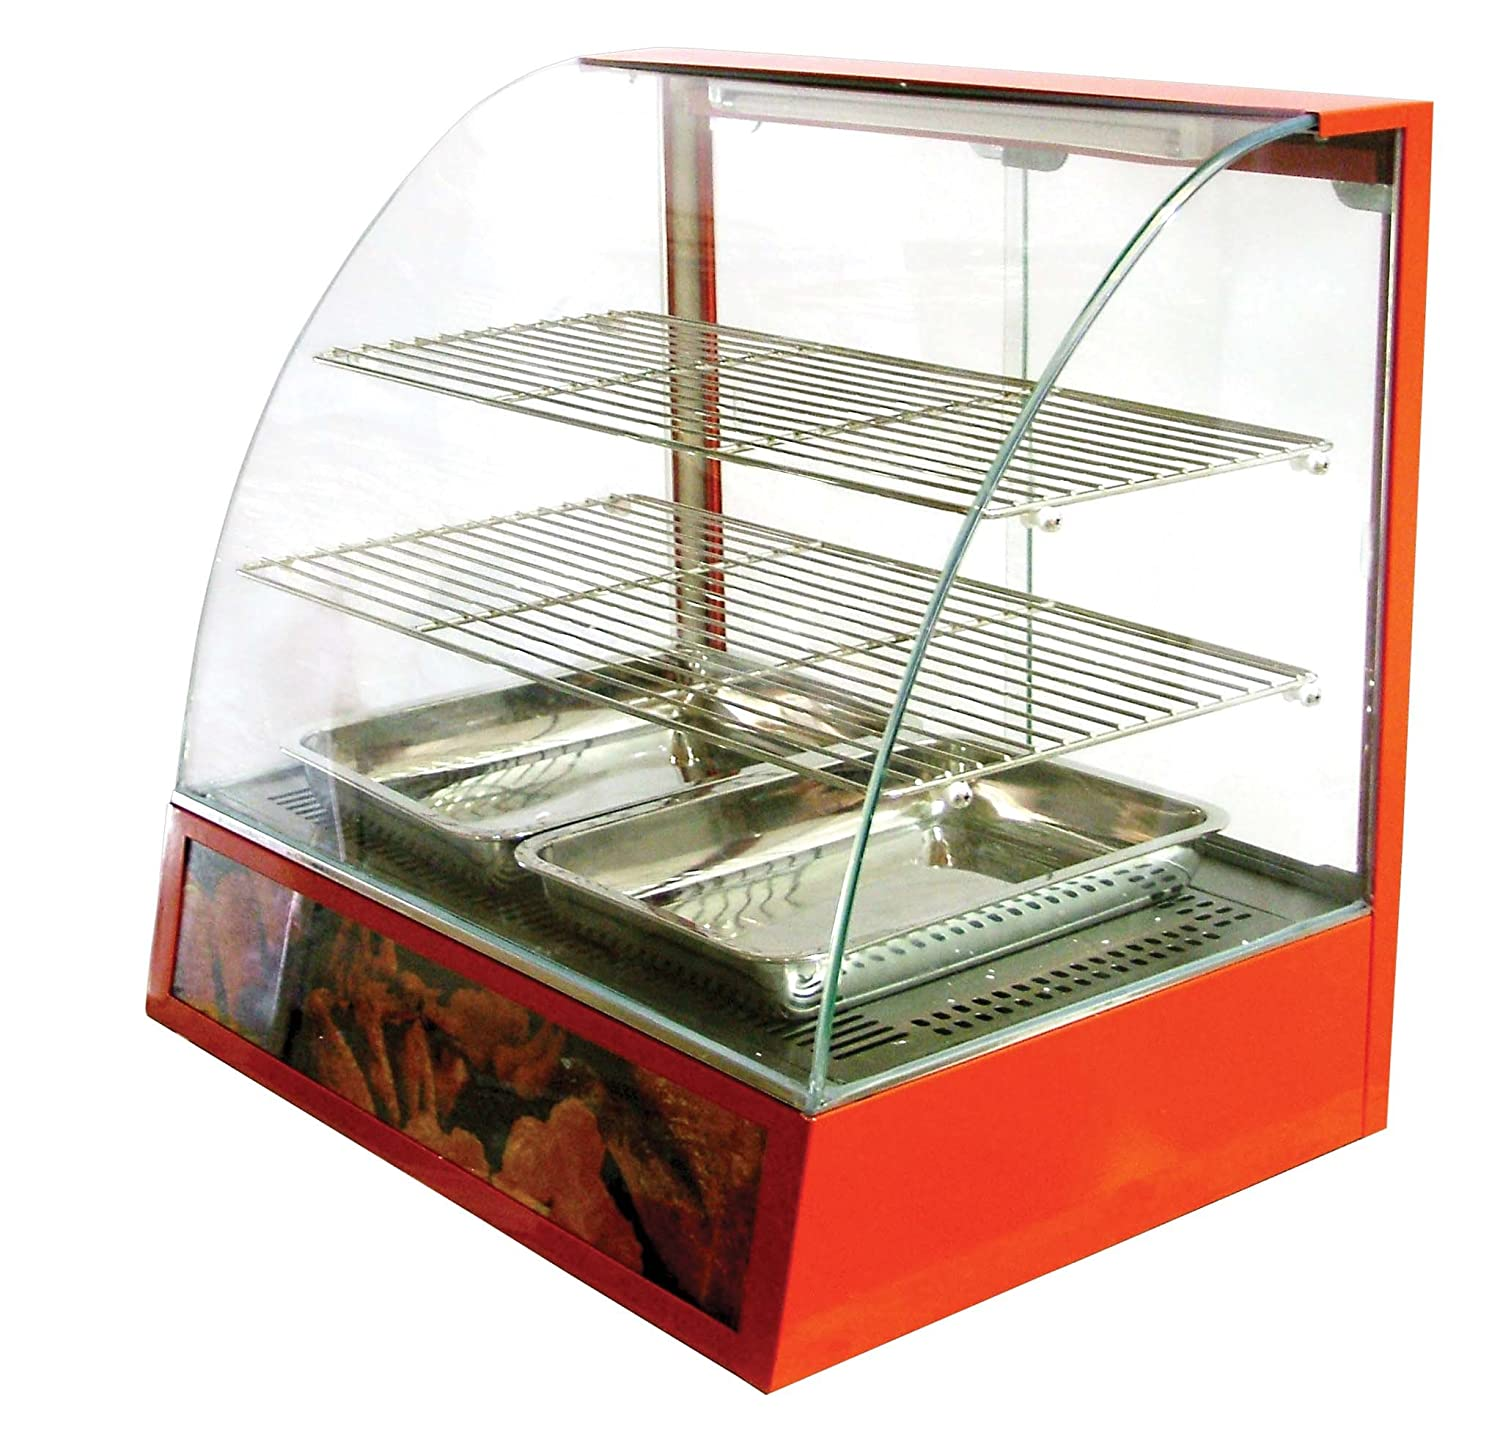 Amazon.com: Omcan 21479 Commercial Curved Glass Hot Food Warmer ...